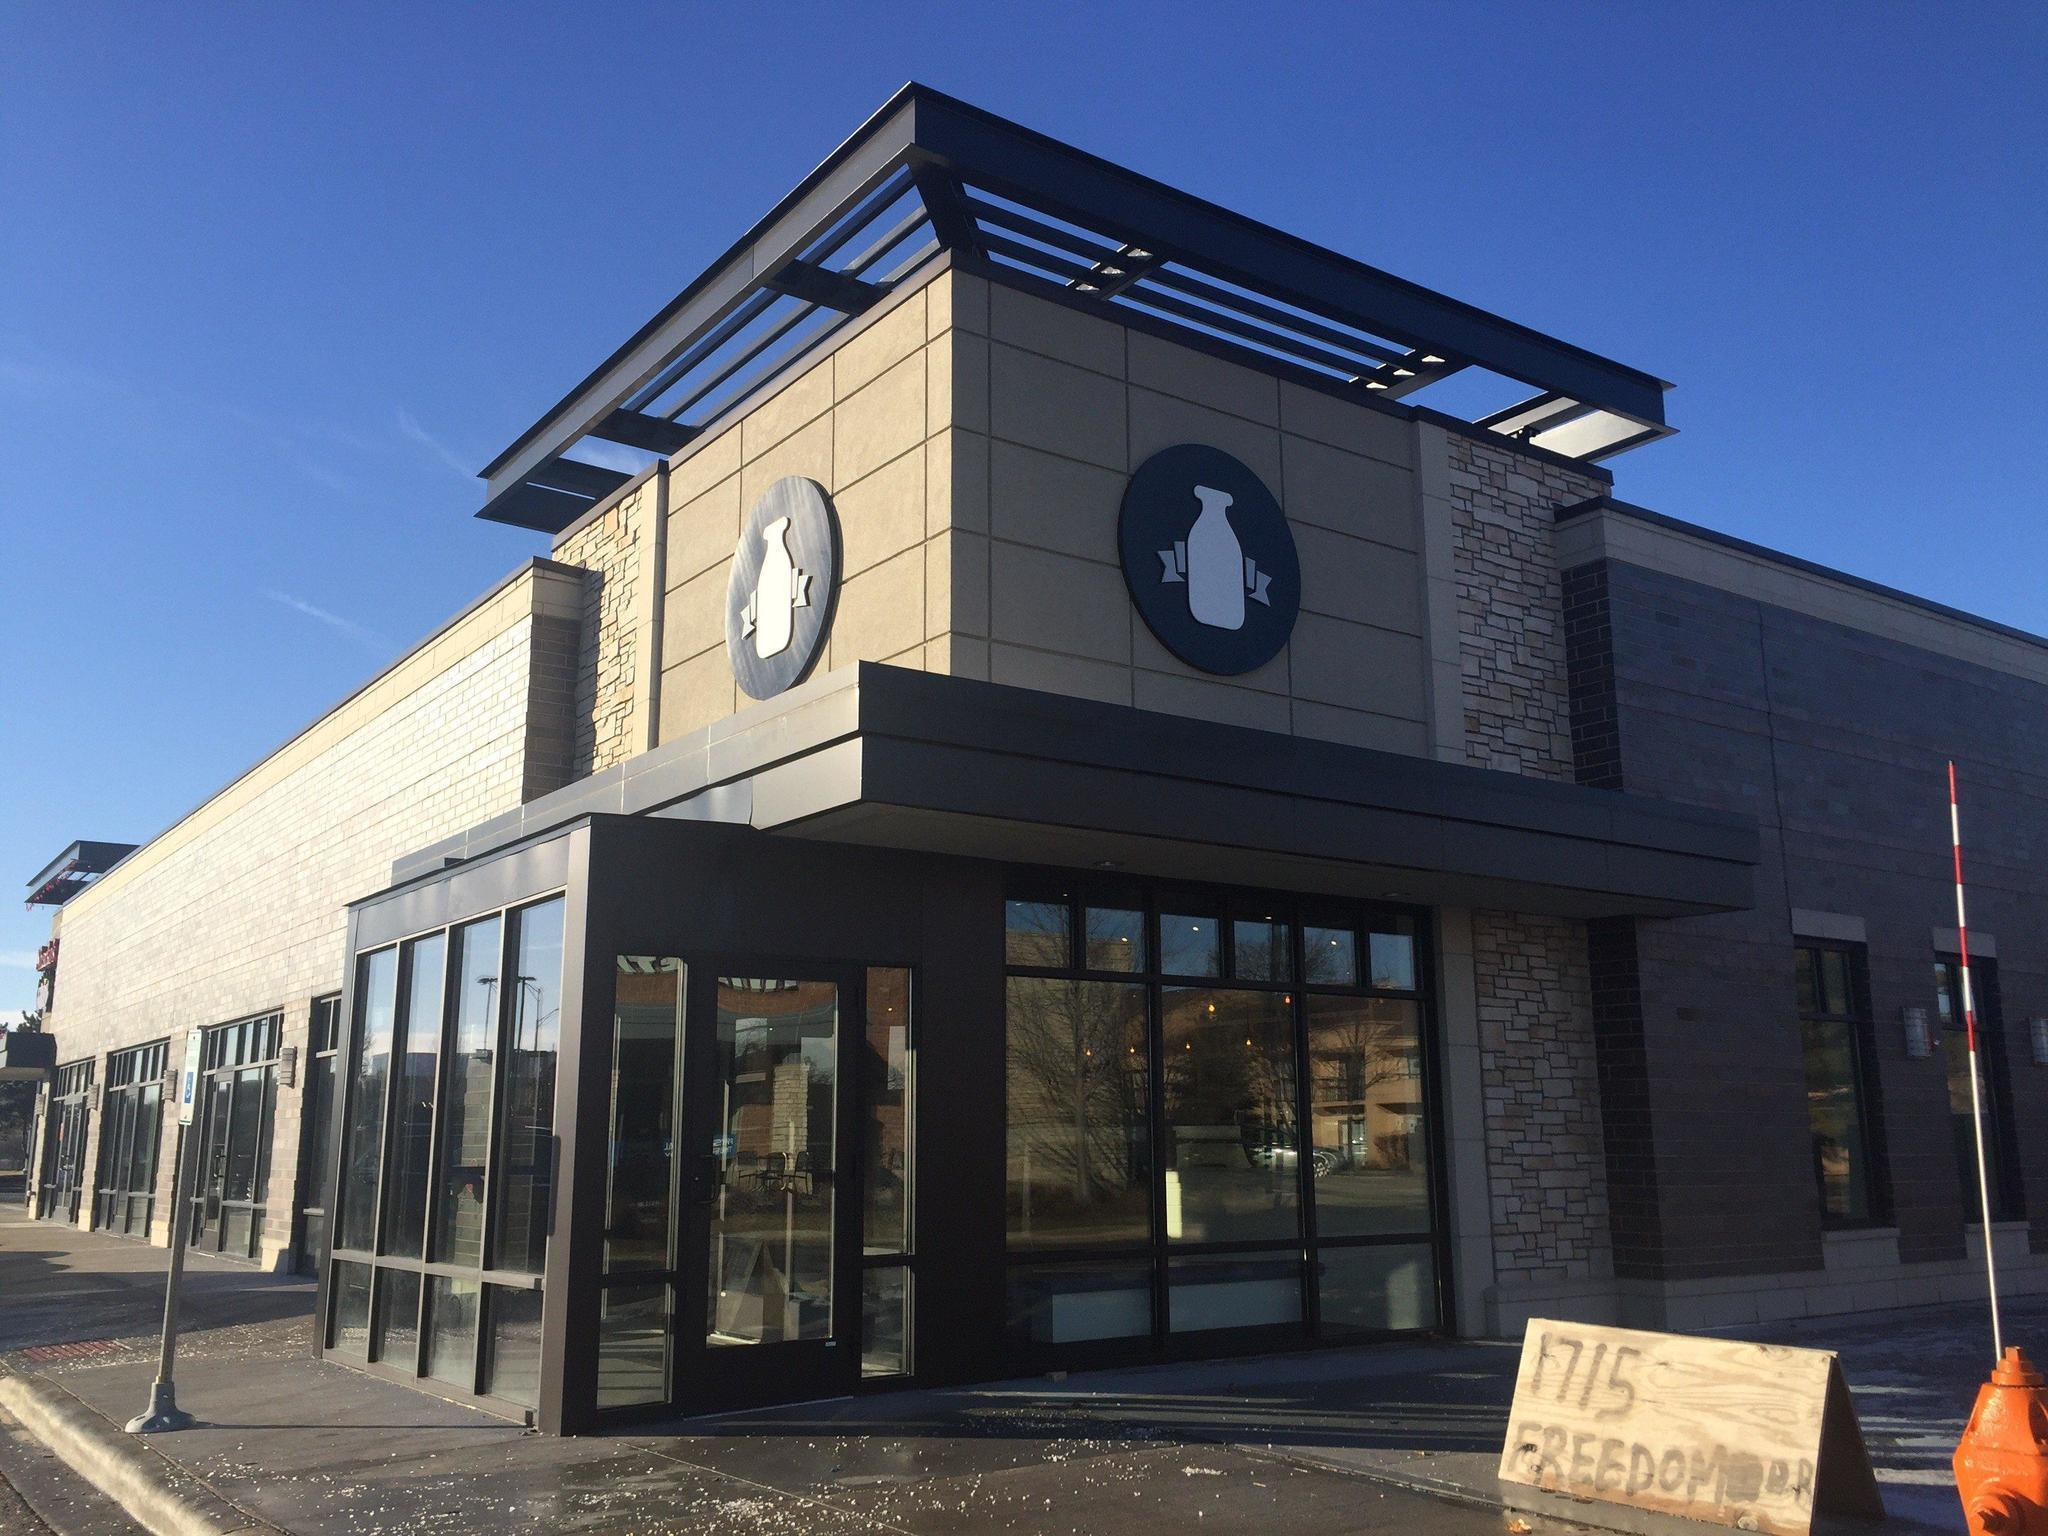 Elevated Breakfastlunch Restaurant Opens In Naperville